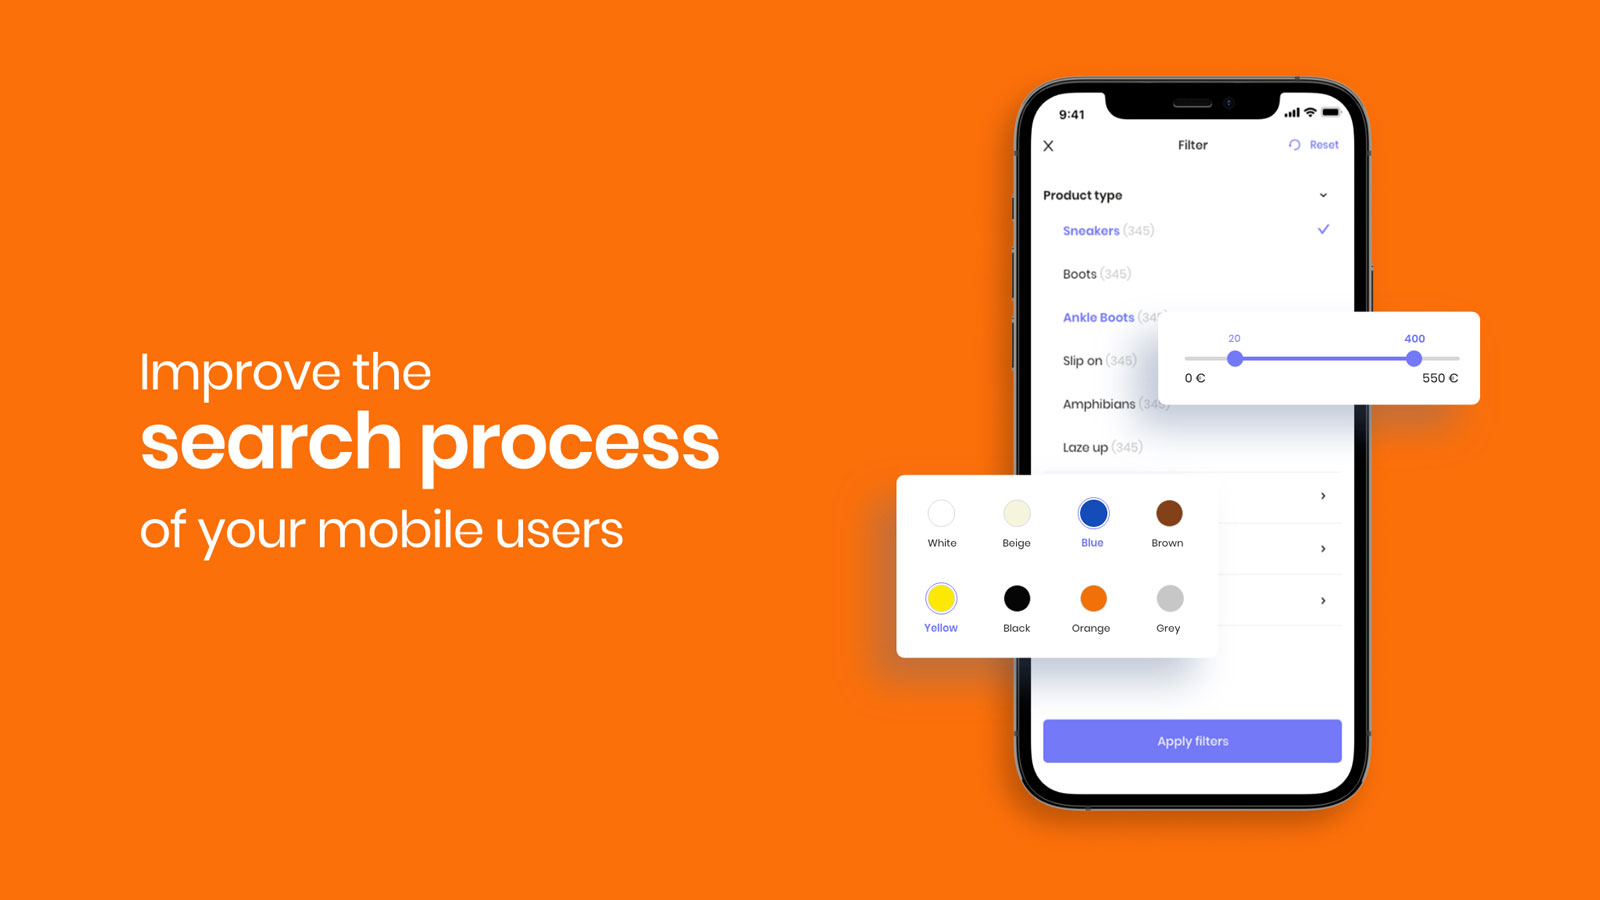 Improve the search process of your mobile users